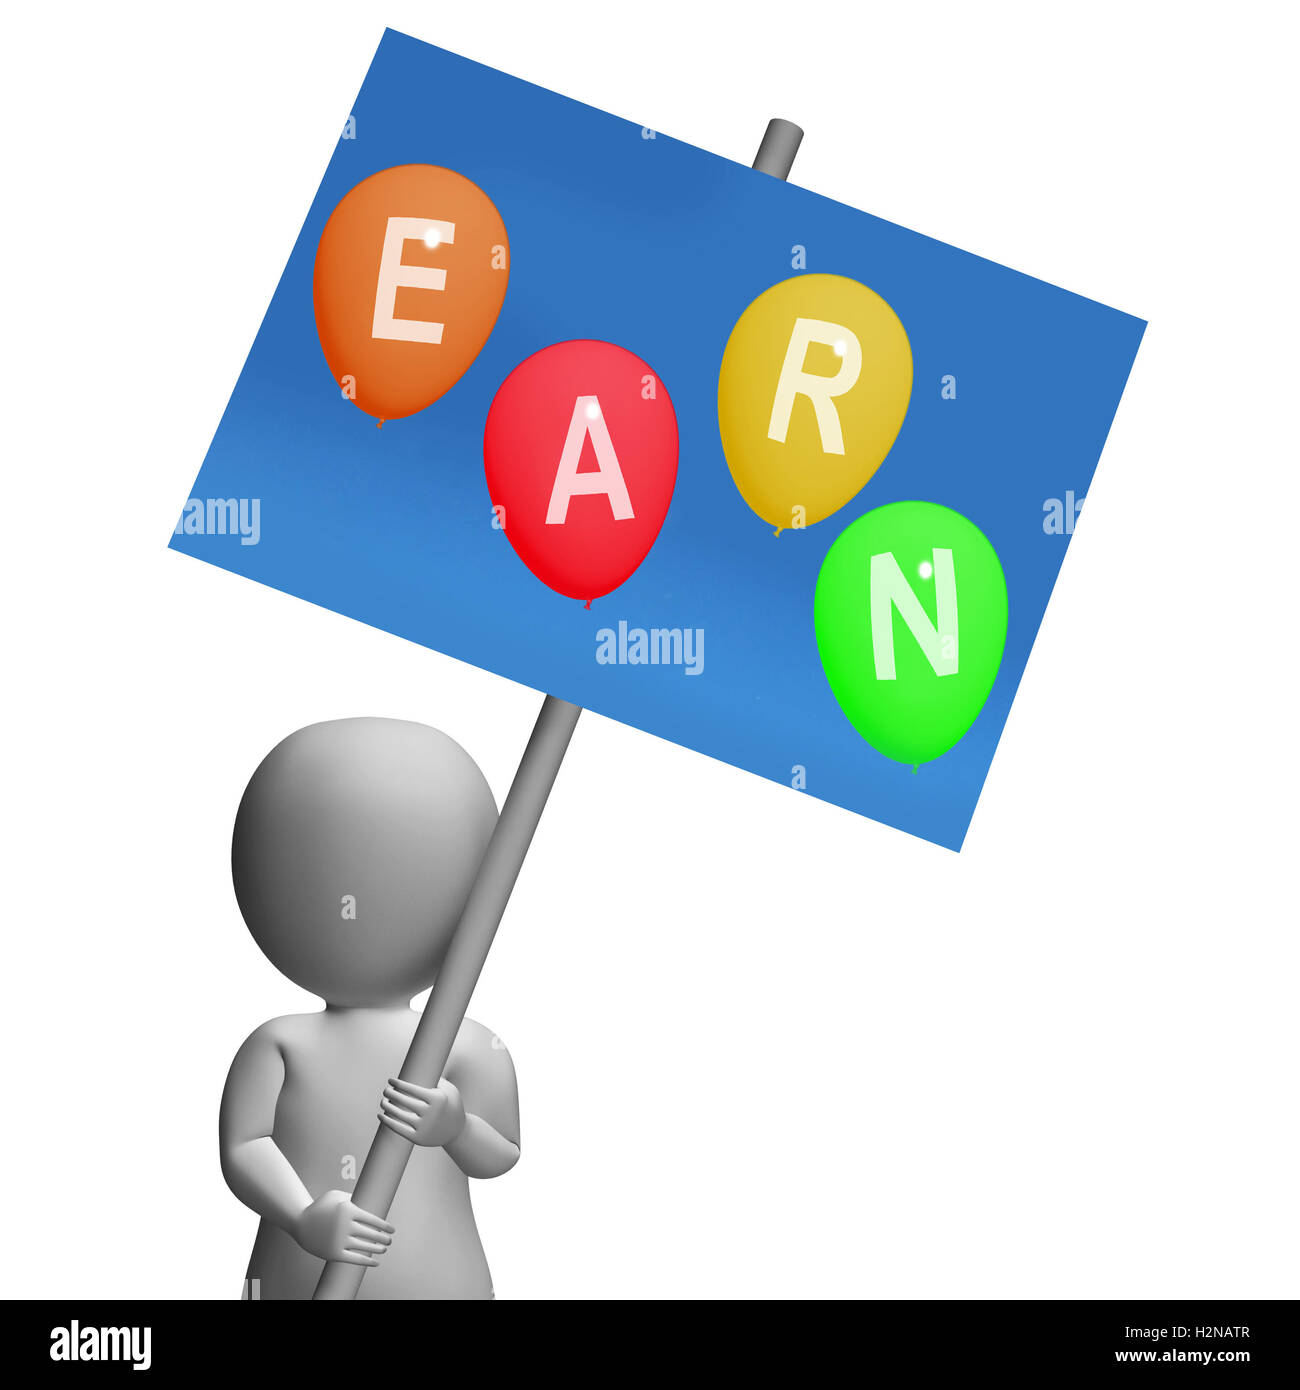 Sign Earn Balloons Showing Online Earnings, Promotions, Opportunities, and Sales - Stock Image